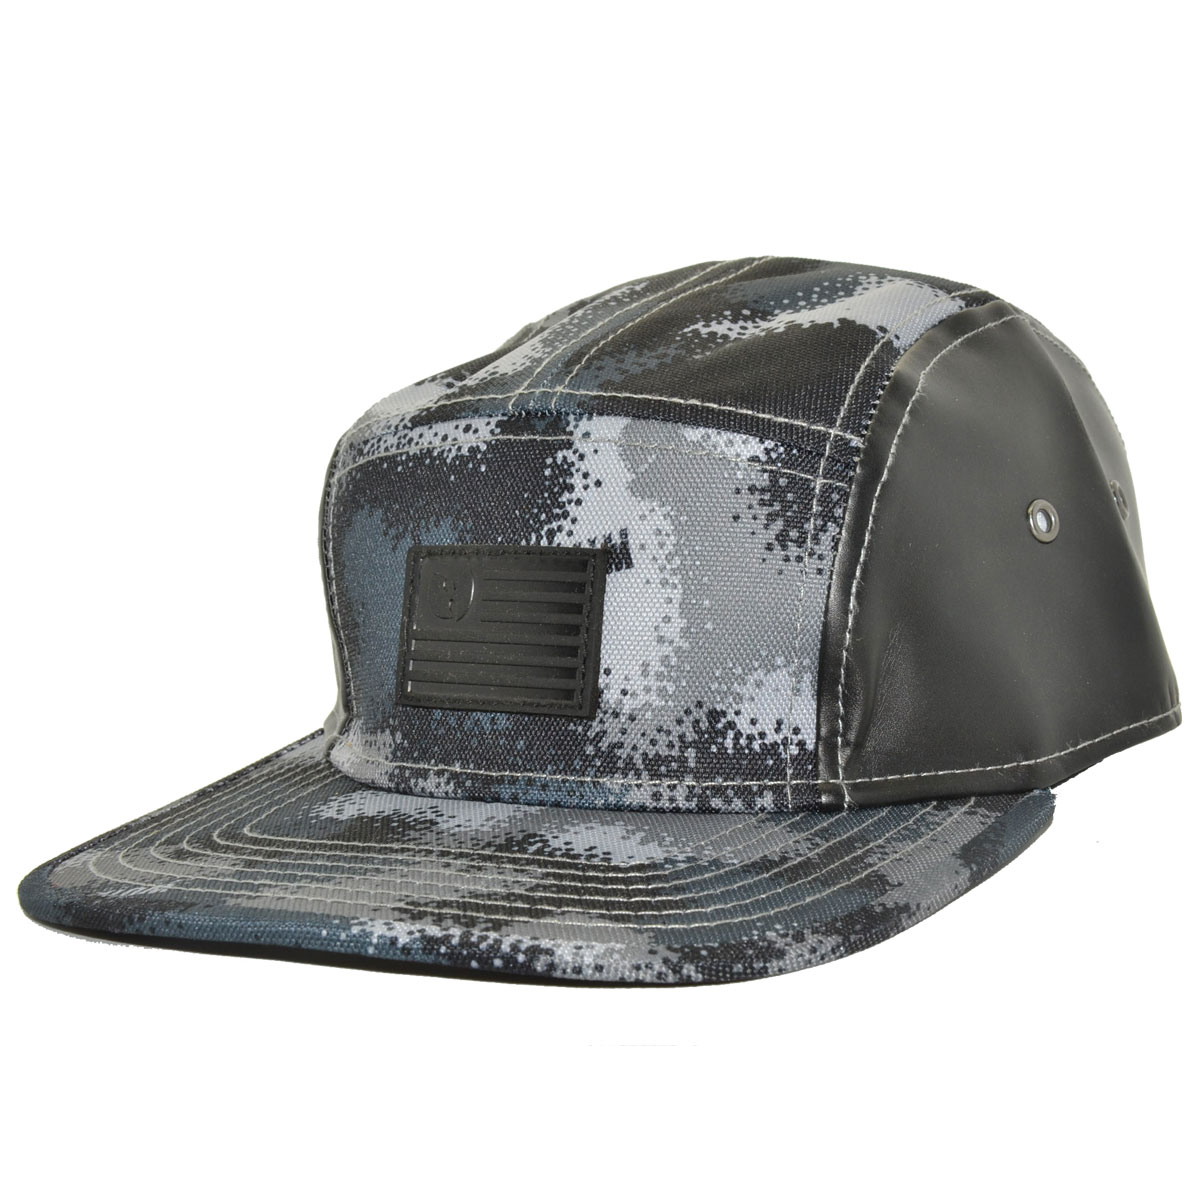 81ceae1746d3f THE WU-TANG BRAND SPRAY CAMO 5 PANEL STRAPBACK CAP – MyCraze